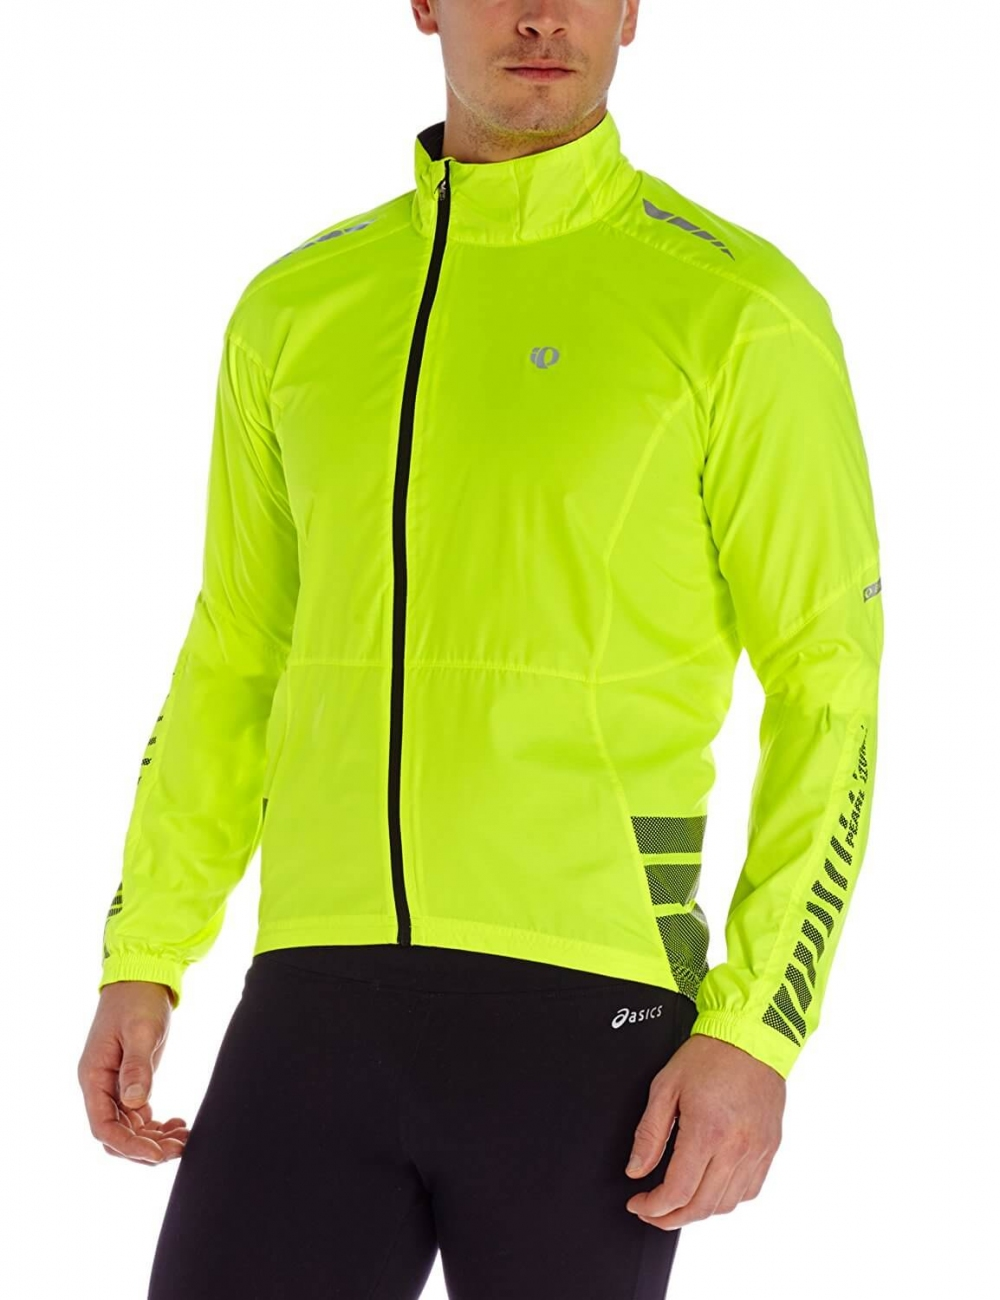 Велокуртка PEARL IZUMI elite barrier ultralight jacket (размер XXL) - 18119